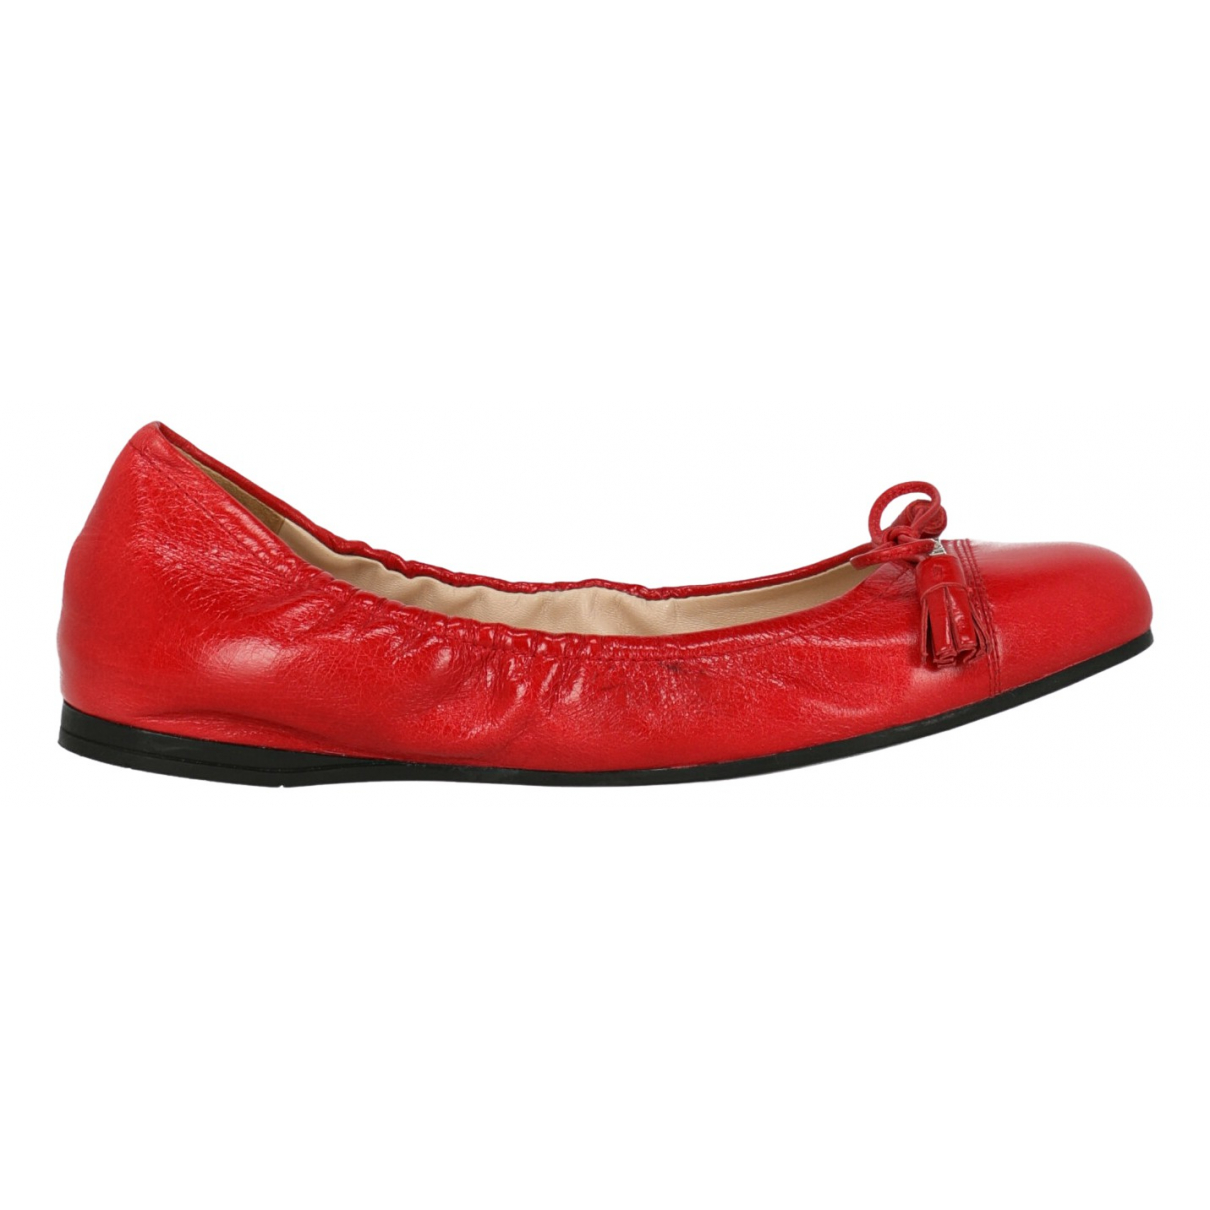 Prada \N Red Leather Ballet flats for Women 36.5 IT